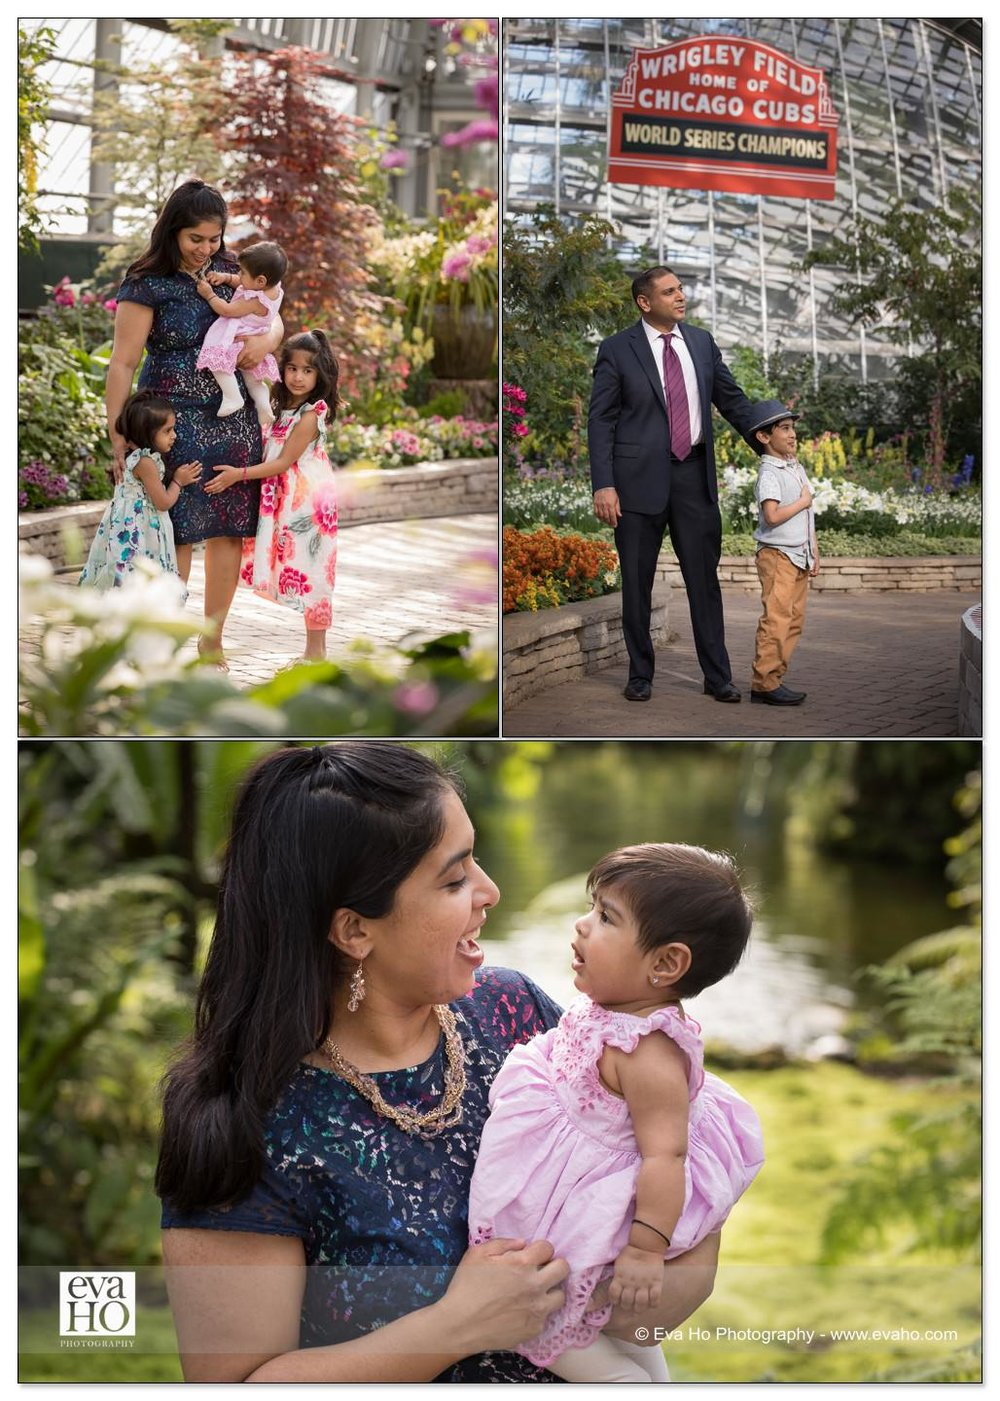 Inside the Garfield Park Conservatory, mom and dad with their energetic kids.